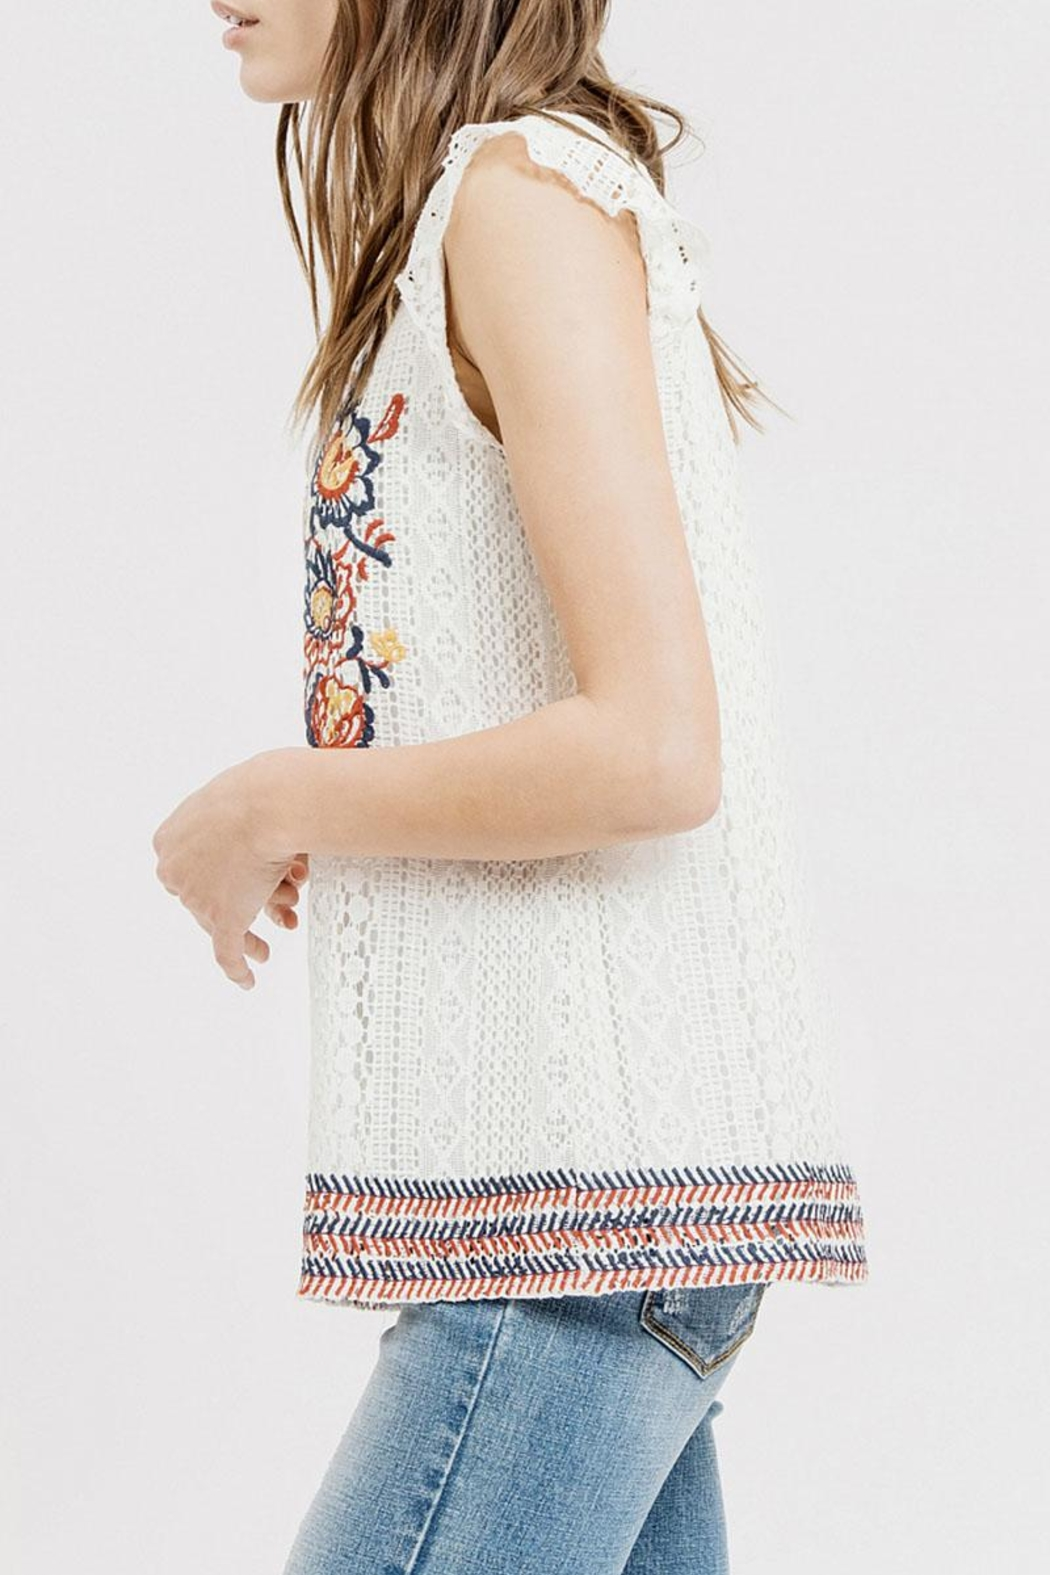 Blu Pepper Embroidered Lace Top - Front Full Image